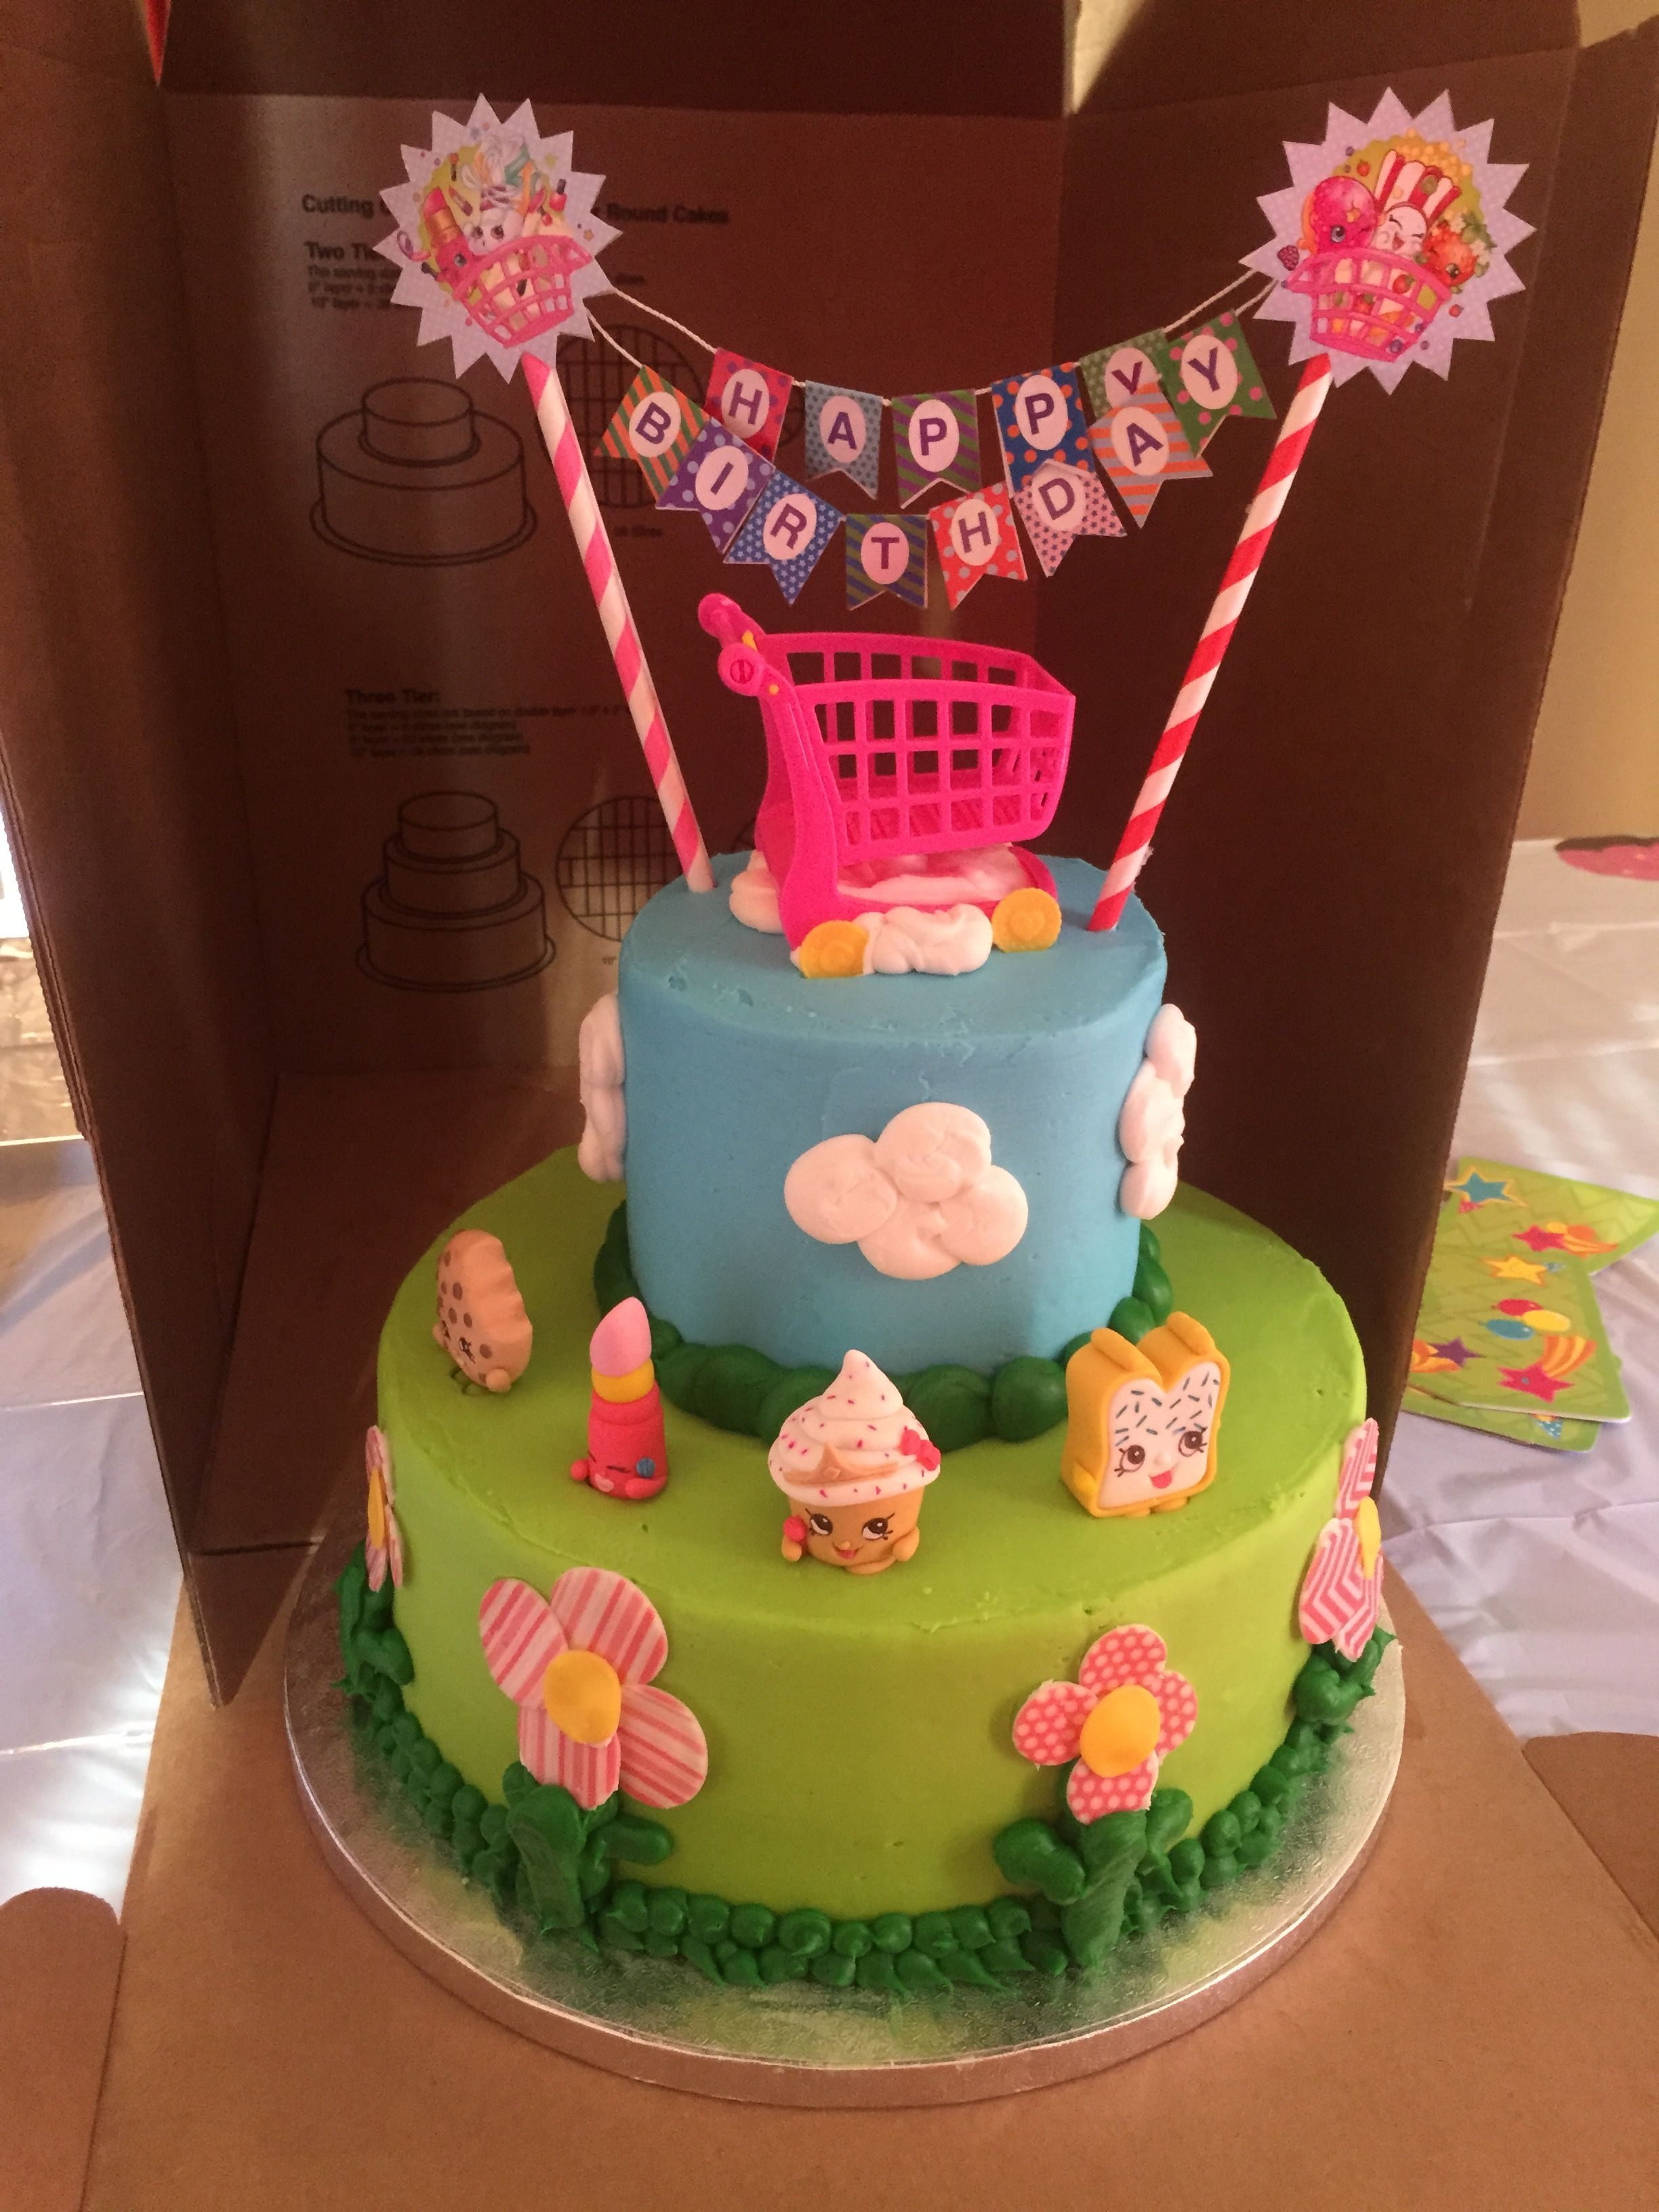 Tremendous Sams Club 2 Tier Cake With Added Shopkins Sams Made The Cake But Funny Birthday Cards Online Alyptdamsfinfo